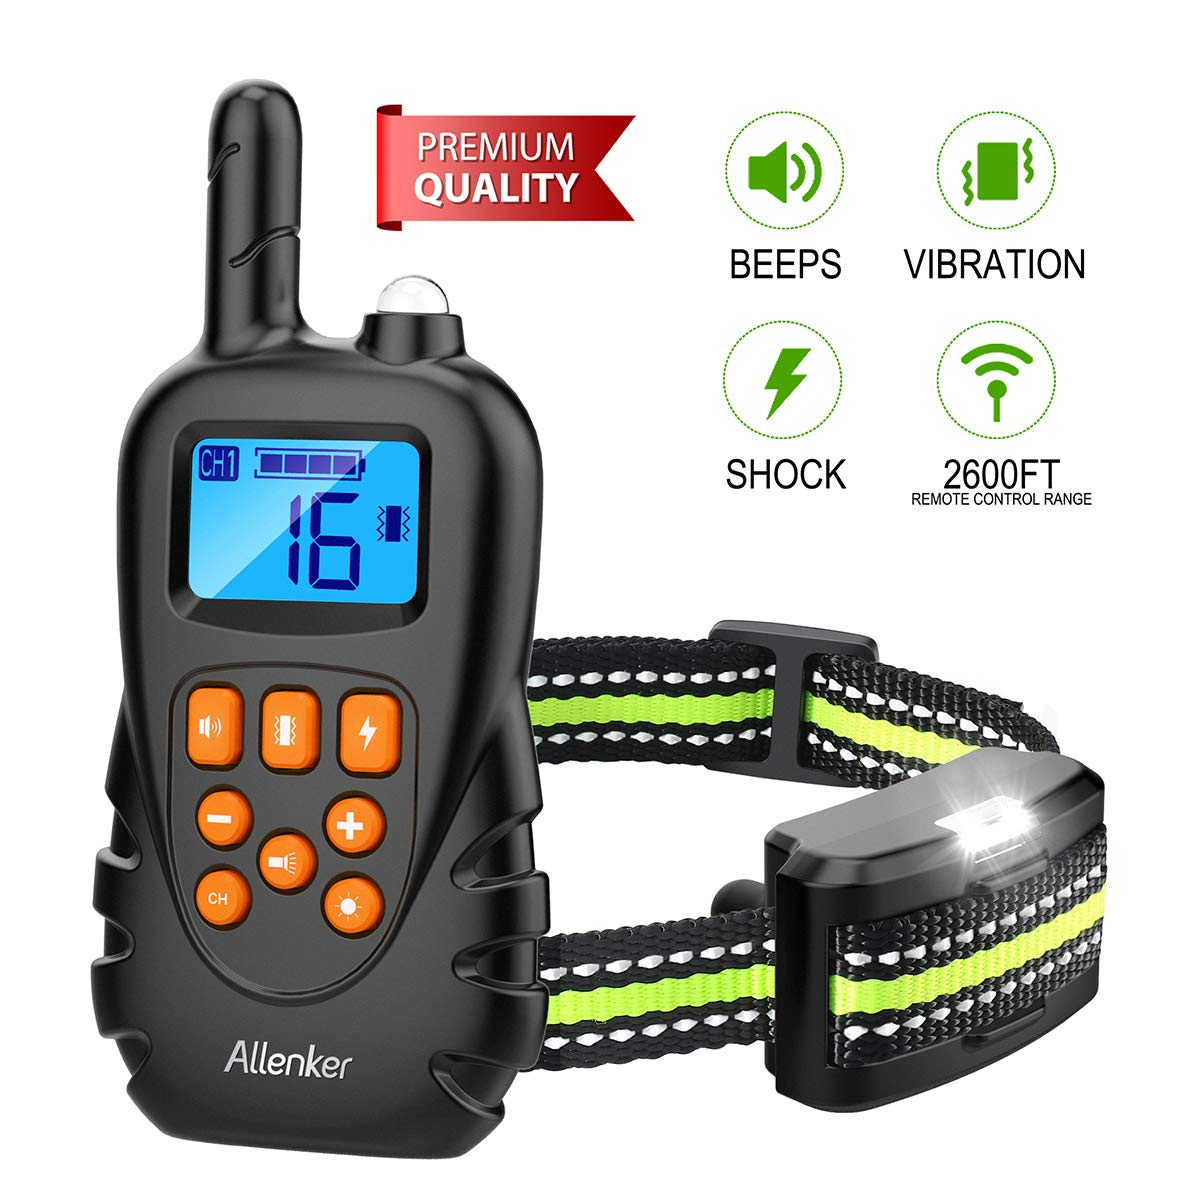 Allenker Shock Collar for Dogs, Dog Shock Collar with Remote Up To 2600Ft Range 100% Waterproof With Beep Vibration Static Shock - 0~16 Levels Adjustable Dog Training Collar with Remote by Allenker